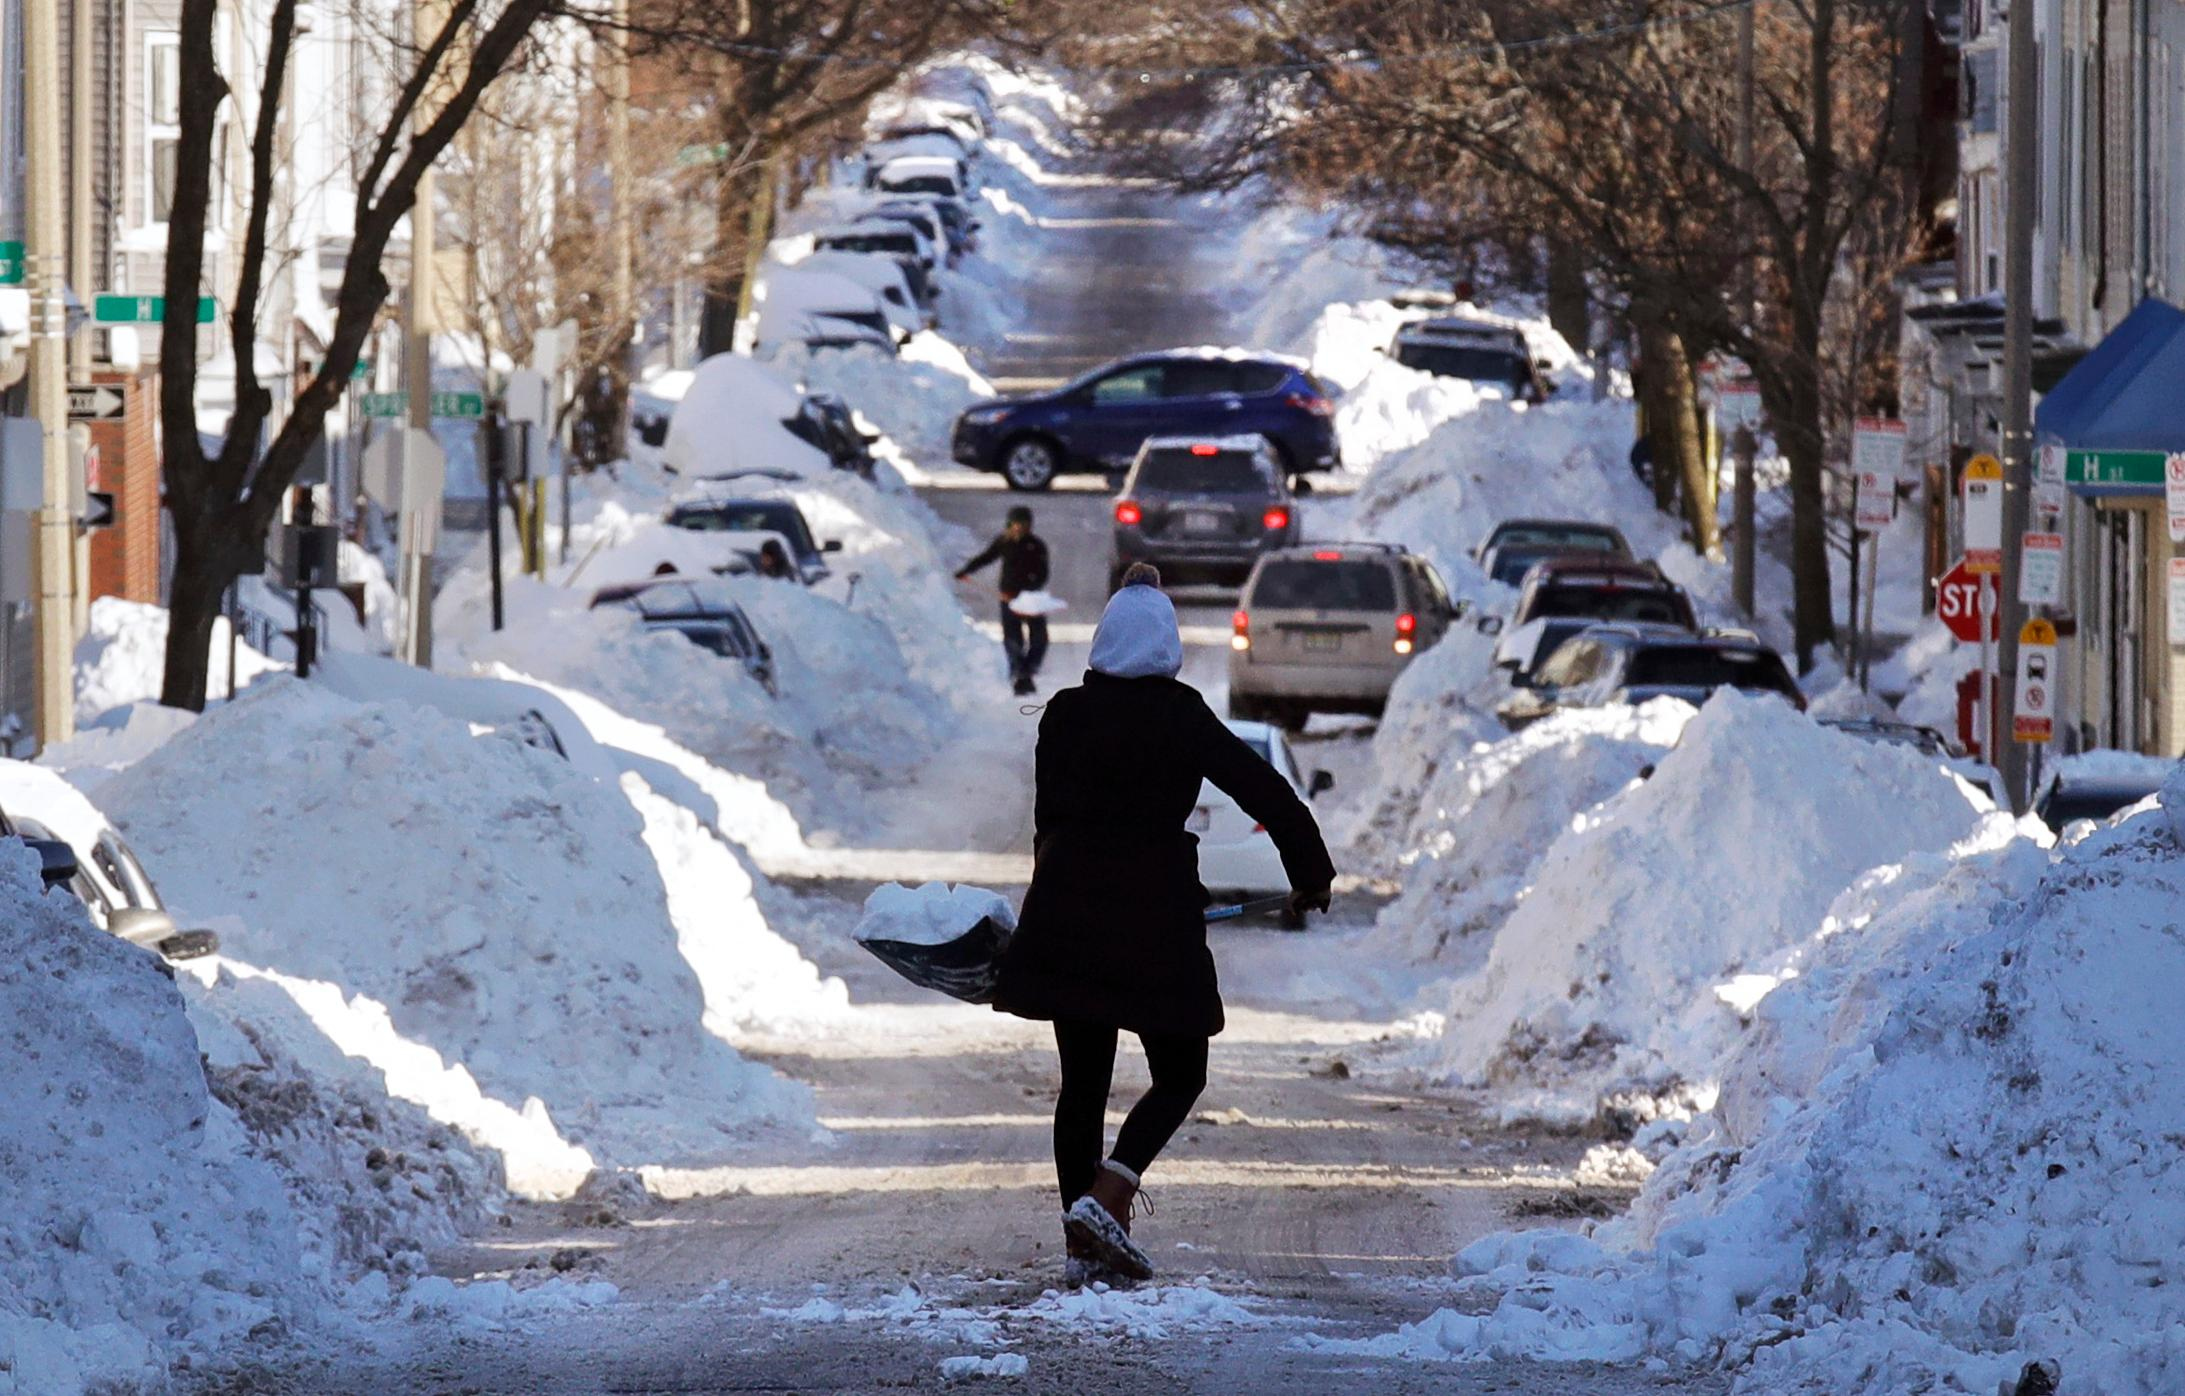 Mollie Lane carries a shovel-full of snow down the street to a pile while digging her car out in the South Boston neighborhood of Boston, Friday, Jan. 5, 2018. Frigid temperatures, some that could feel as cold as minus 30 degrees, moved across the East Coast on Friday as the region attempted to clean up from a massive winter storm. (AP Photo/Charles Krupa)